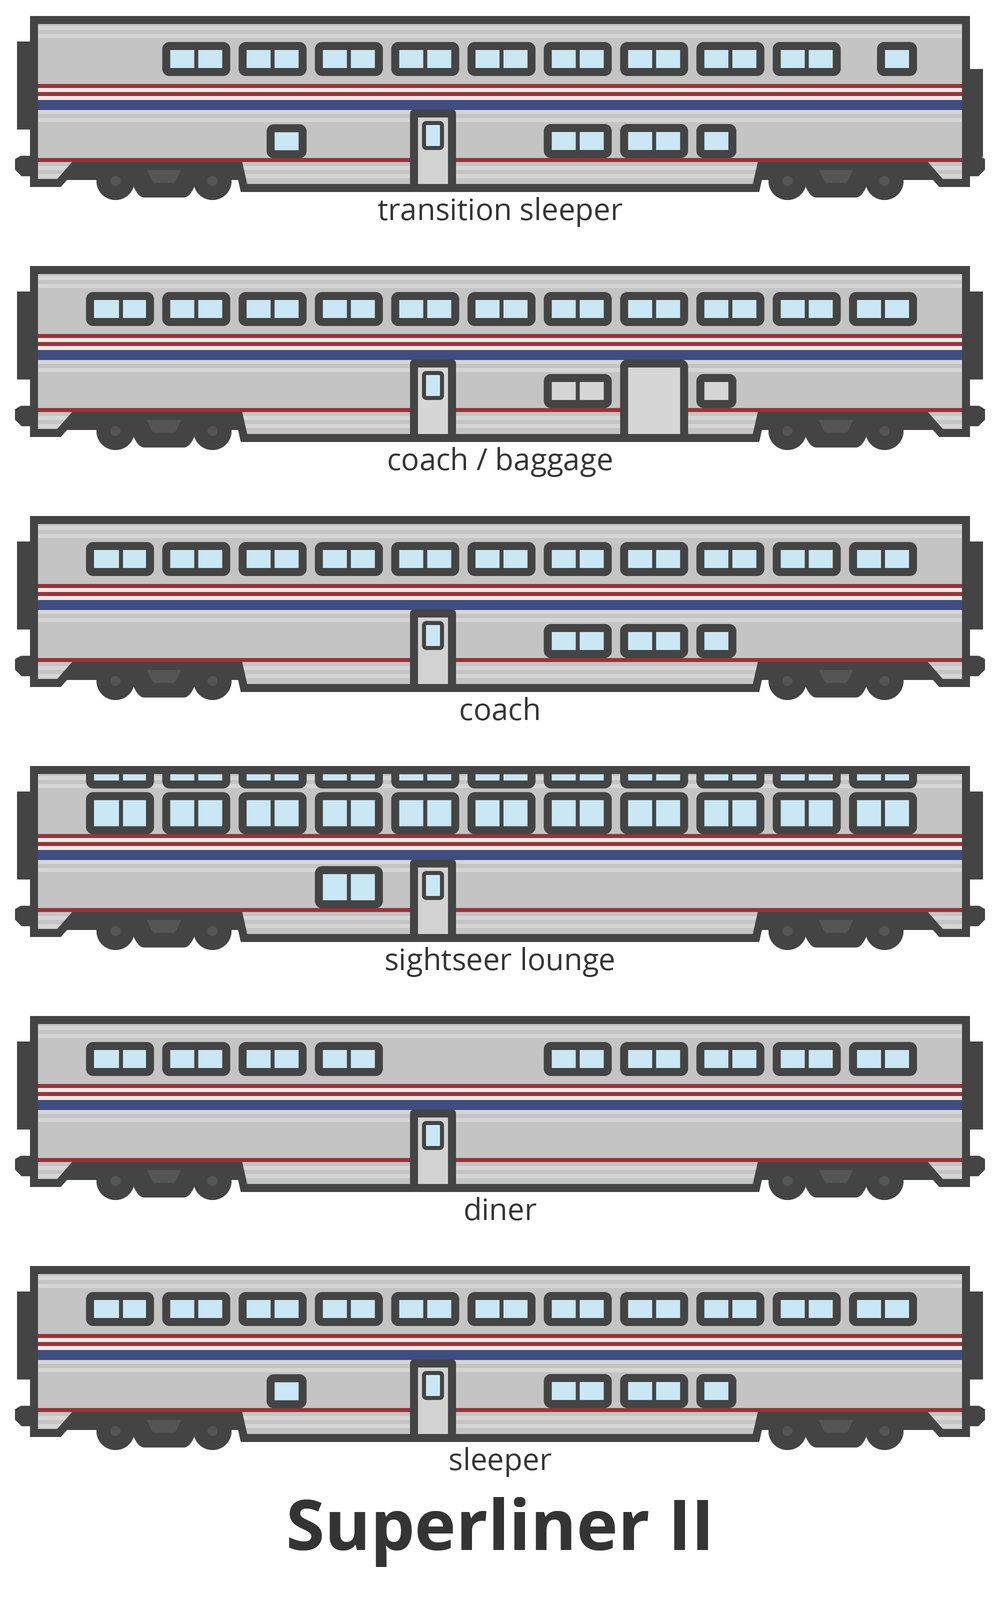 amtrak-superlinerii.jpg